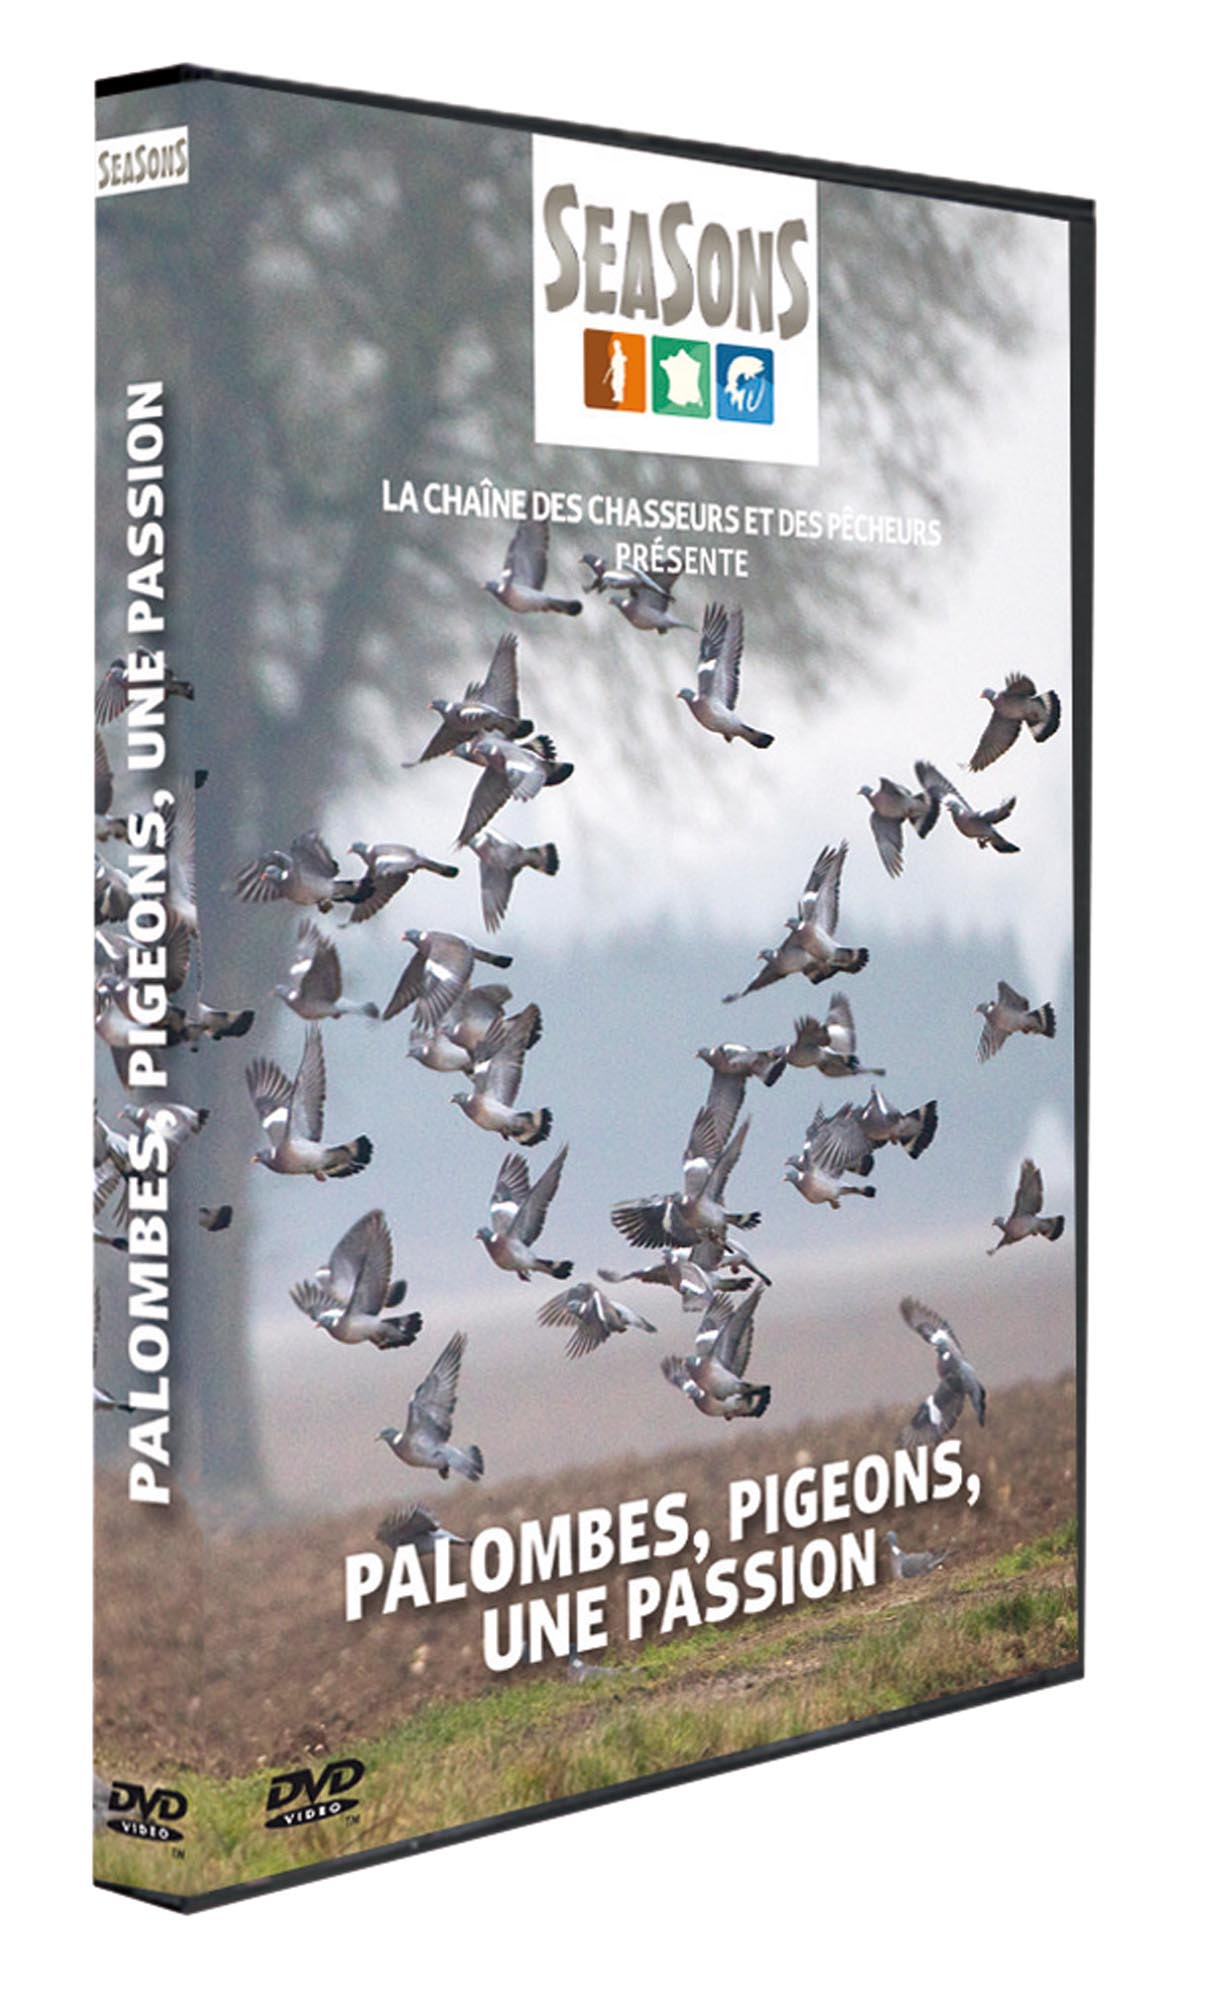 DVD13-DVD Seasons - Palombes, pigeons, une passion - DVD13